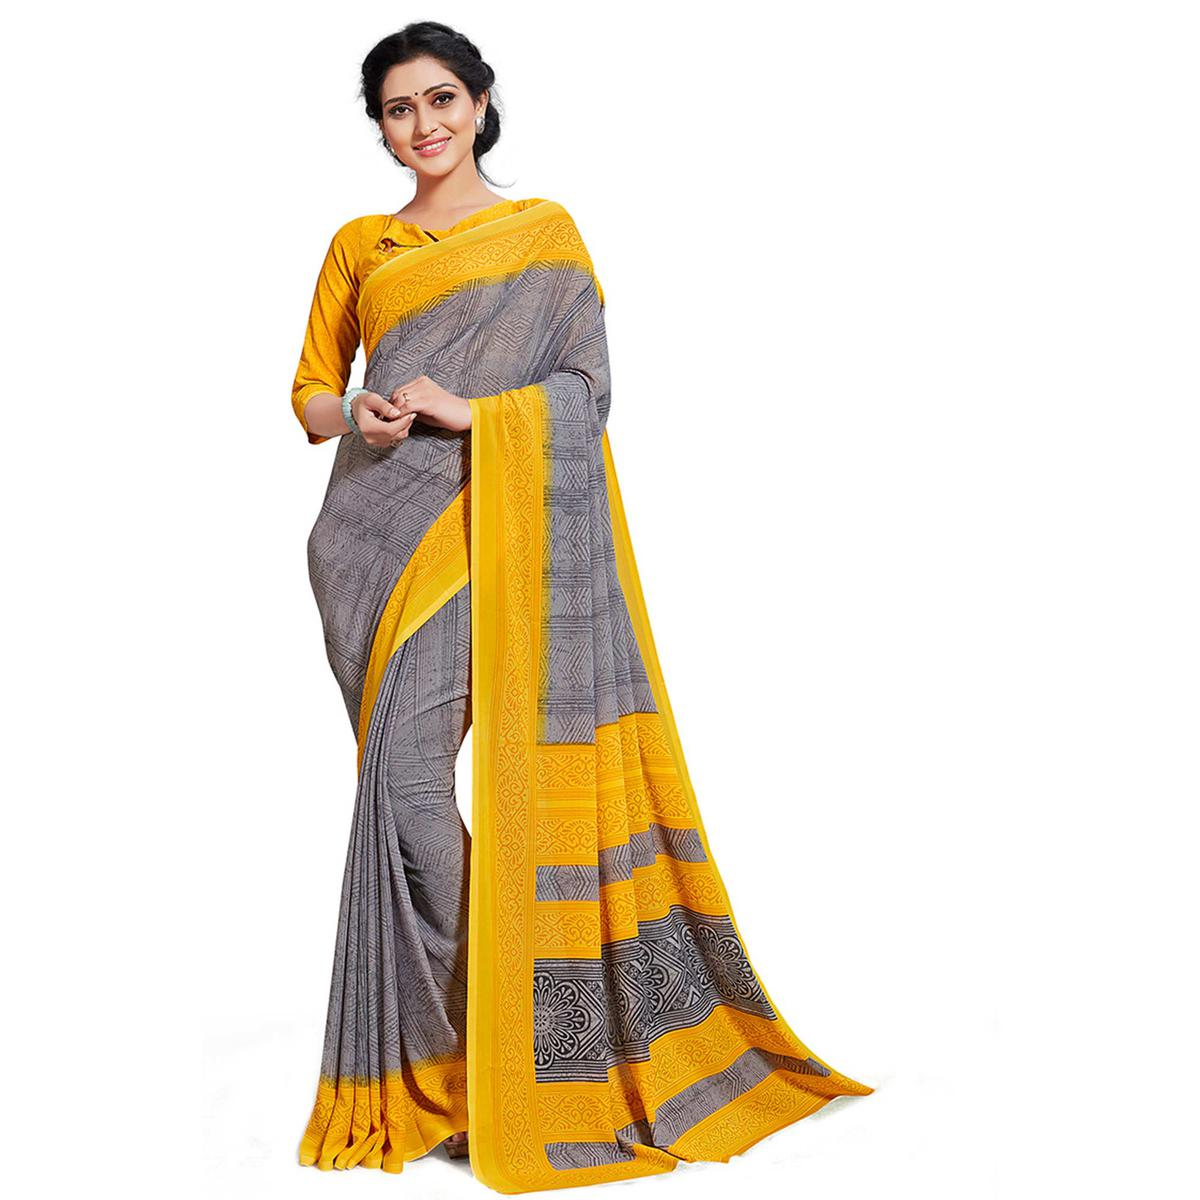 Majesty Grey-Yellow Colored Casual Printed Georgette Saree